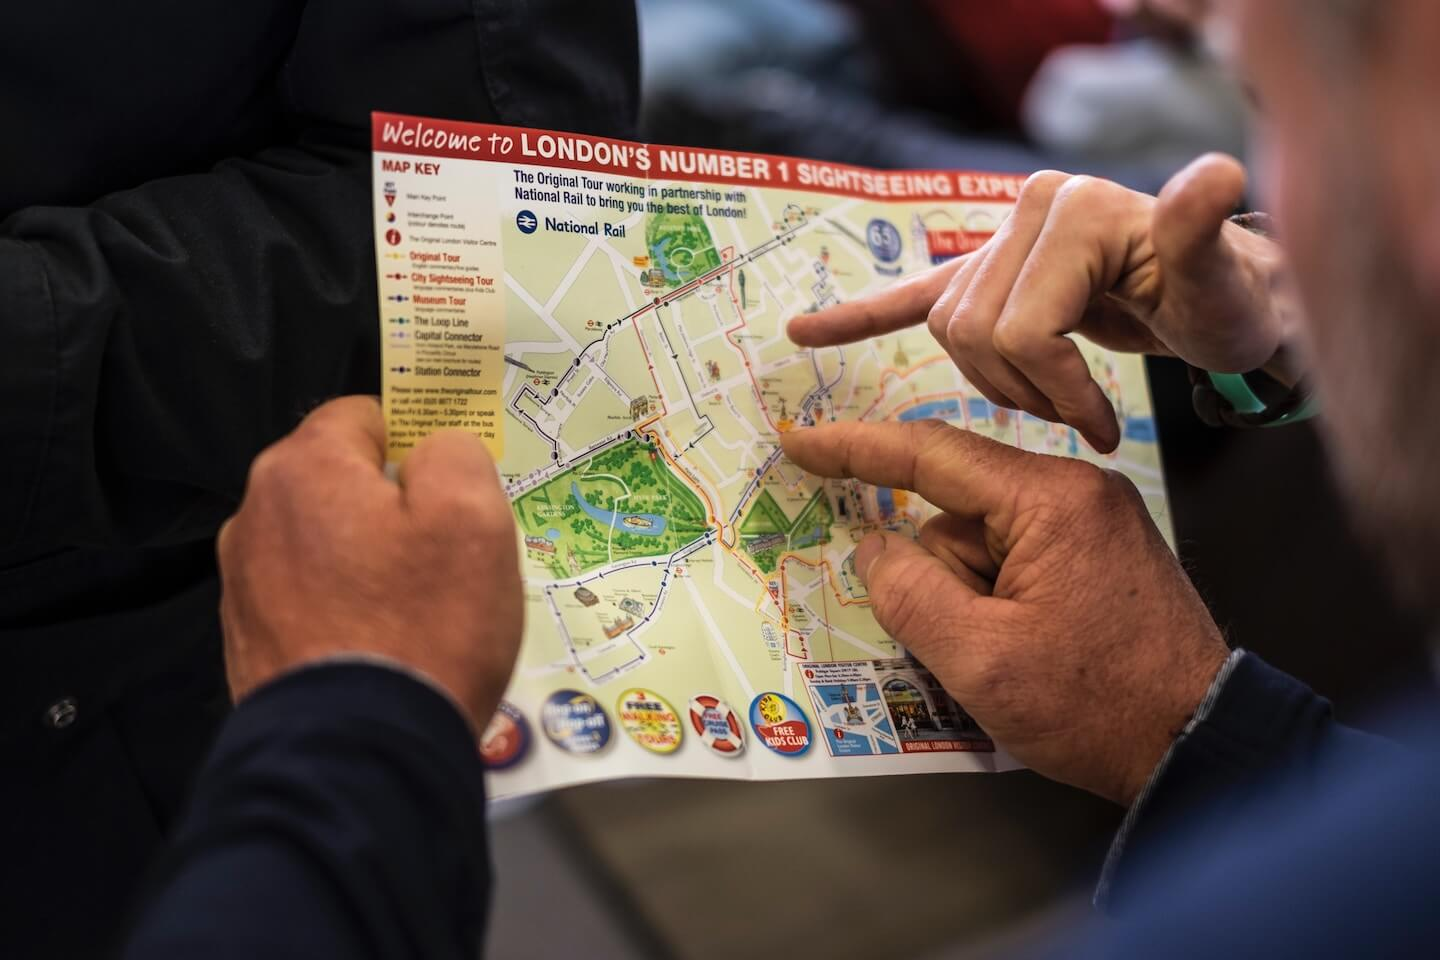 People pointing at a spot on a map